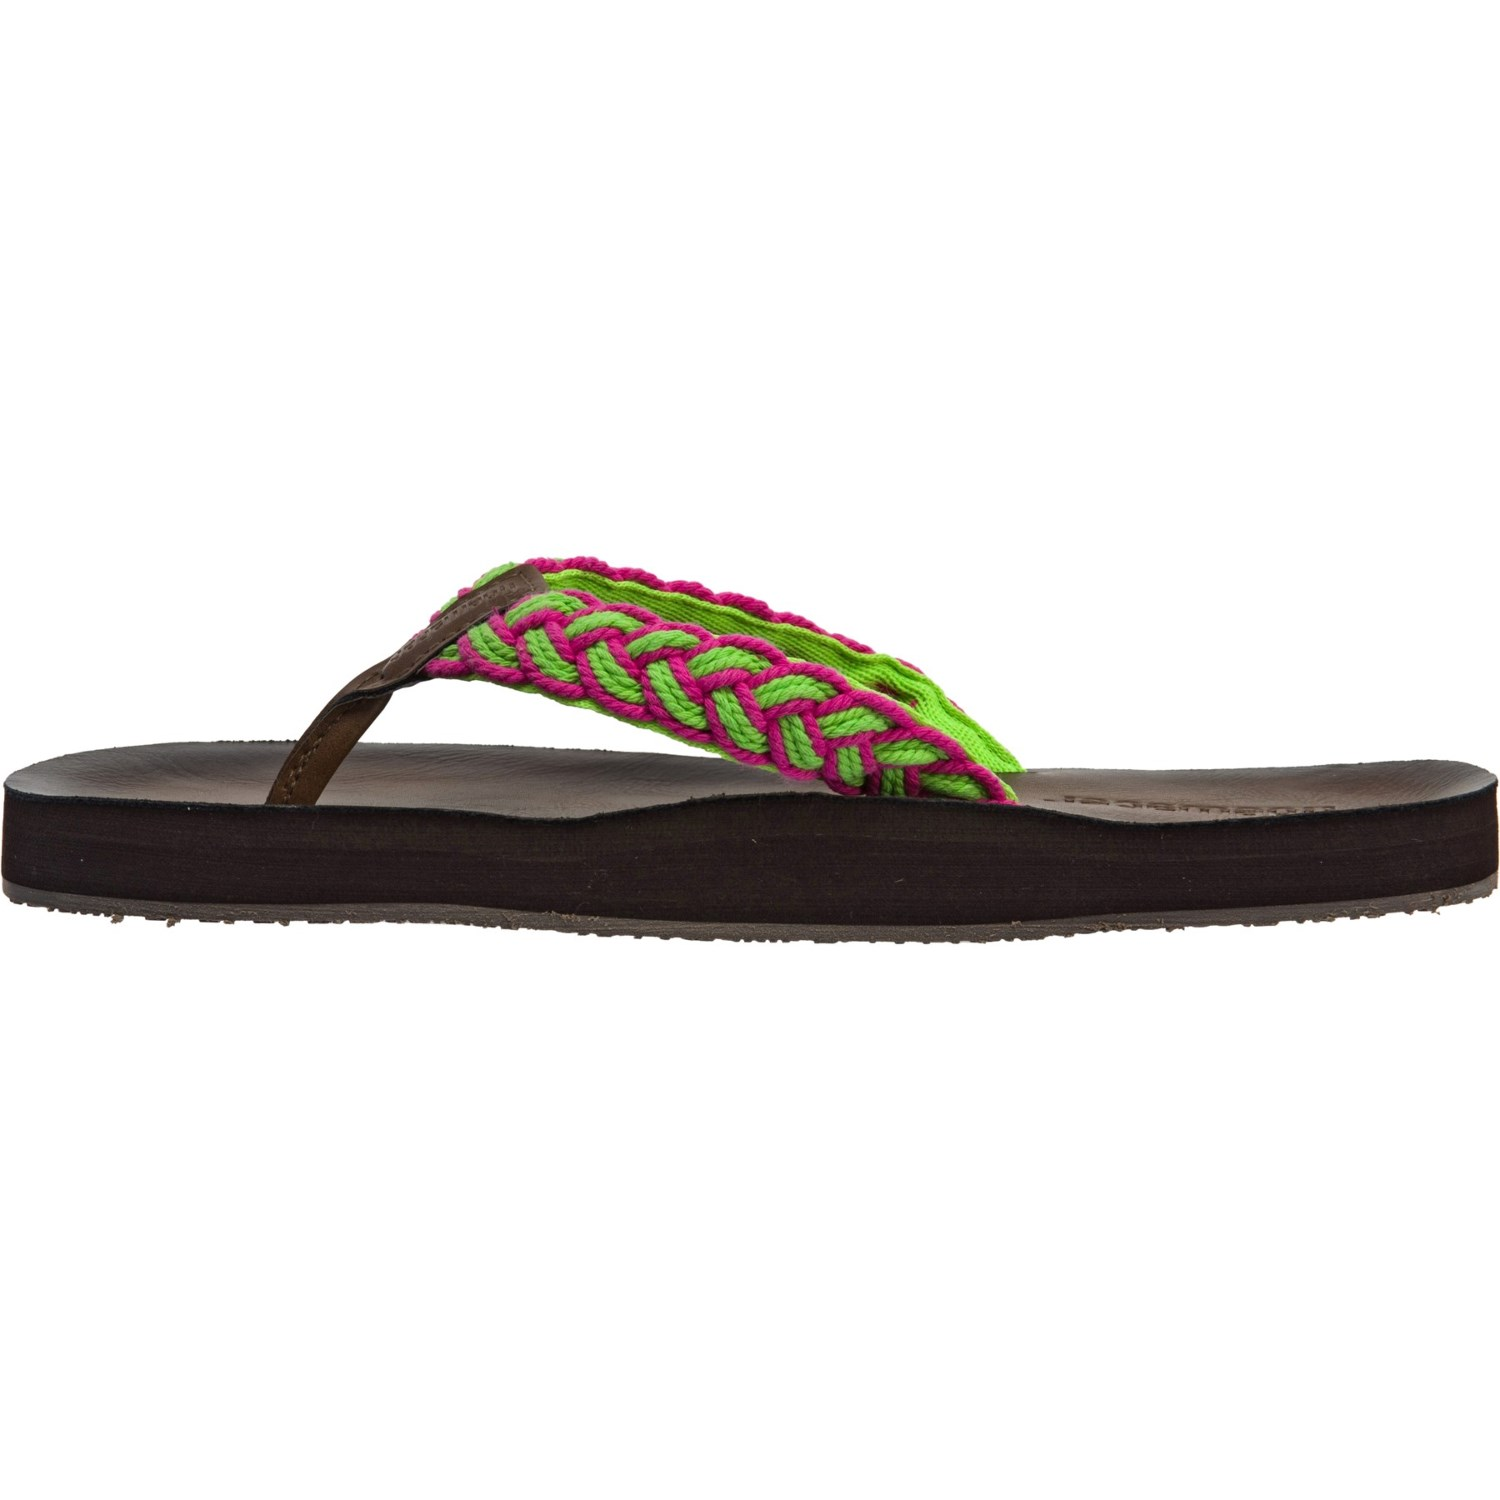 a38e98c09885 Tidewater Tallulah Pink Flip-Flops (For Women) - Save 60%